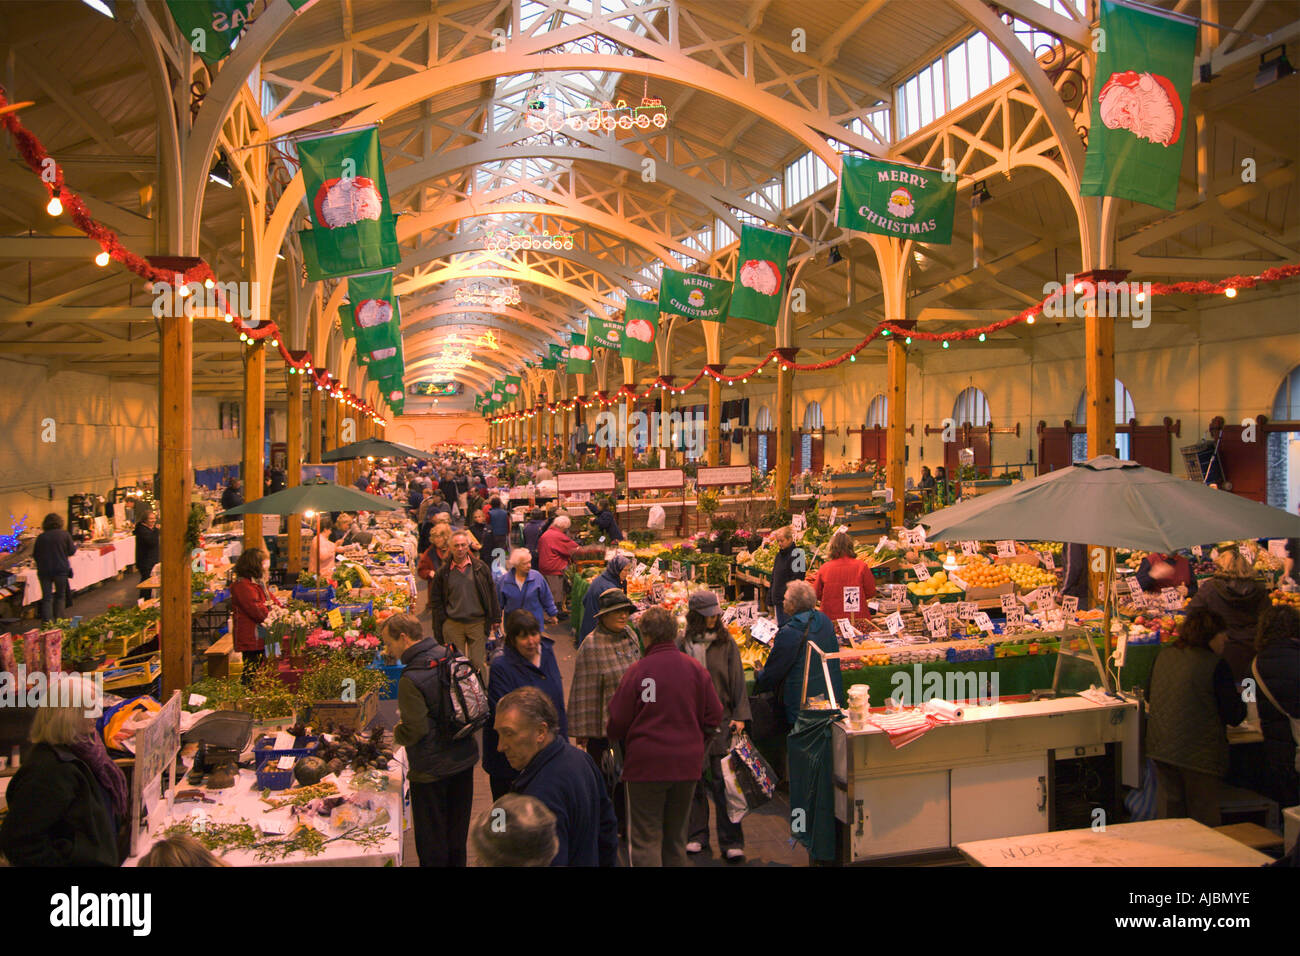 indoor pannier market with ornate arched roof lit up with christmas decorations in barnstaple north devon england